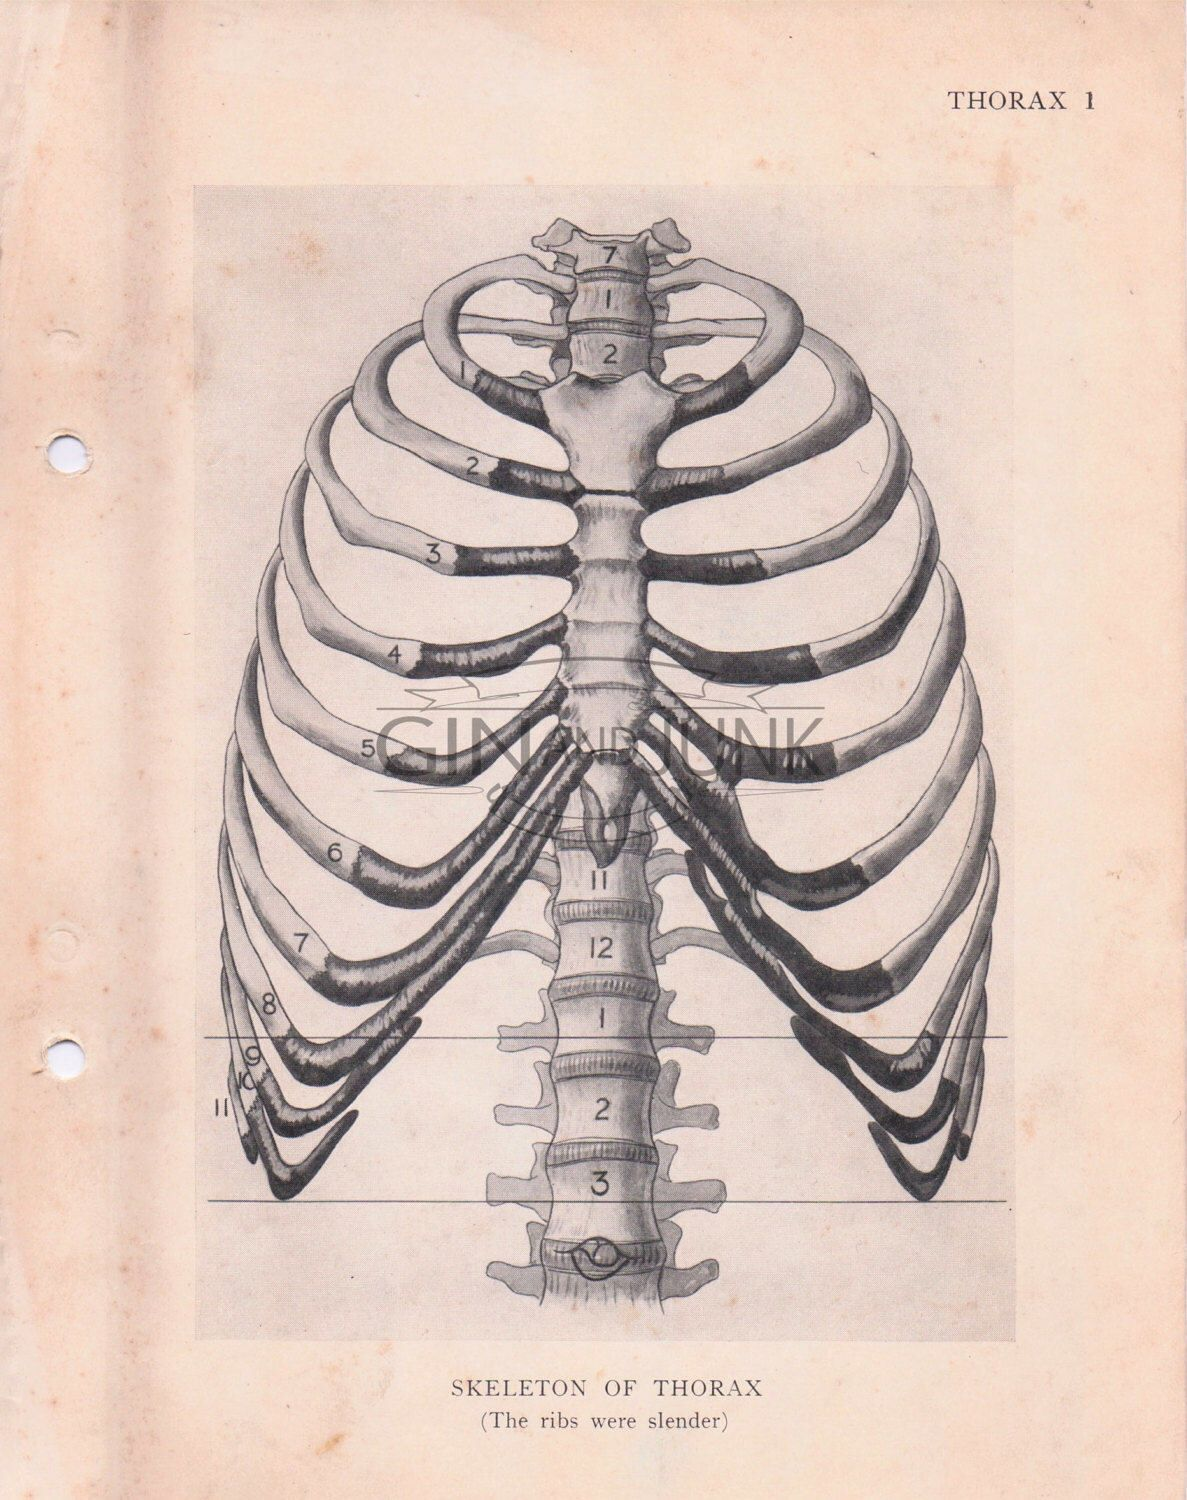 Vintage Medical Drawing Diagrams Of The Thorax And Rib Cage From